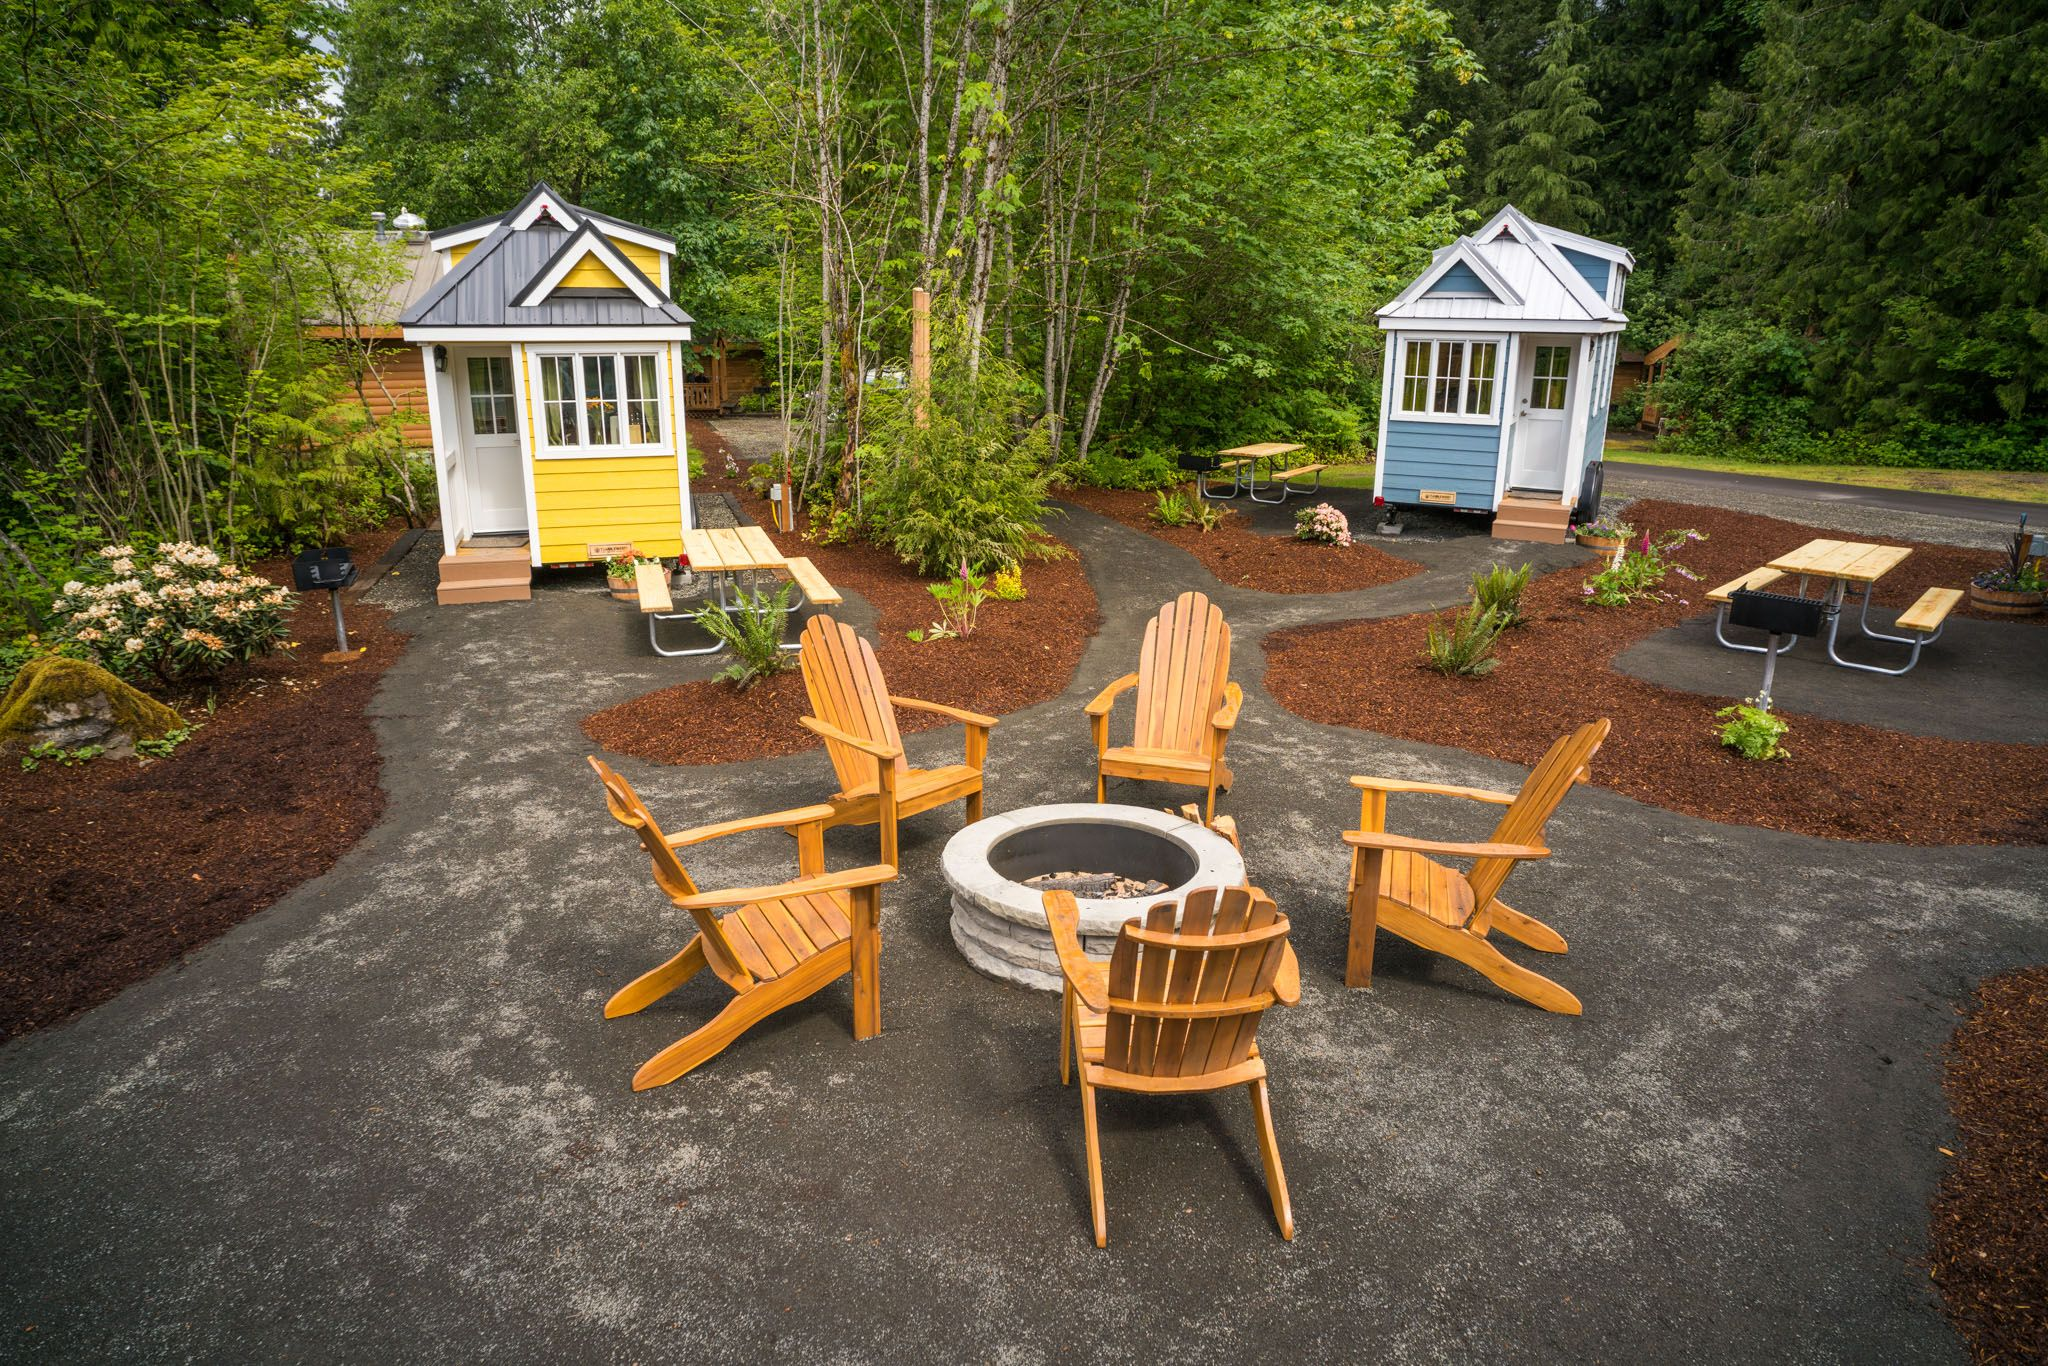 mt hood tiny house village now offers five tiny homes as